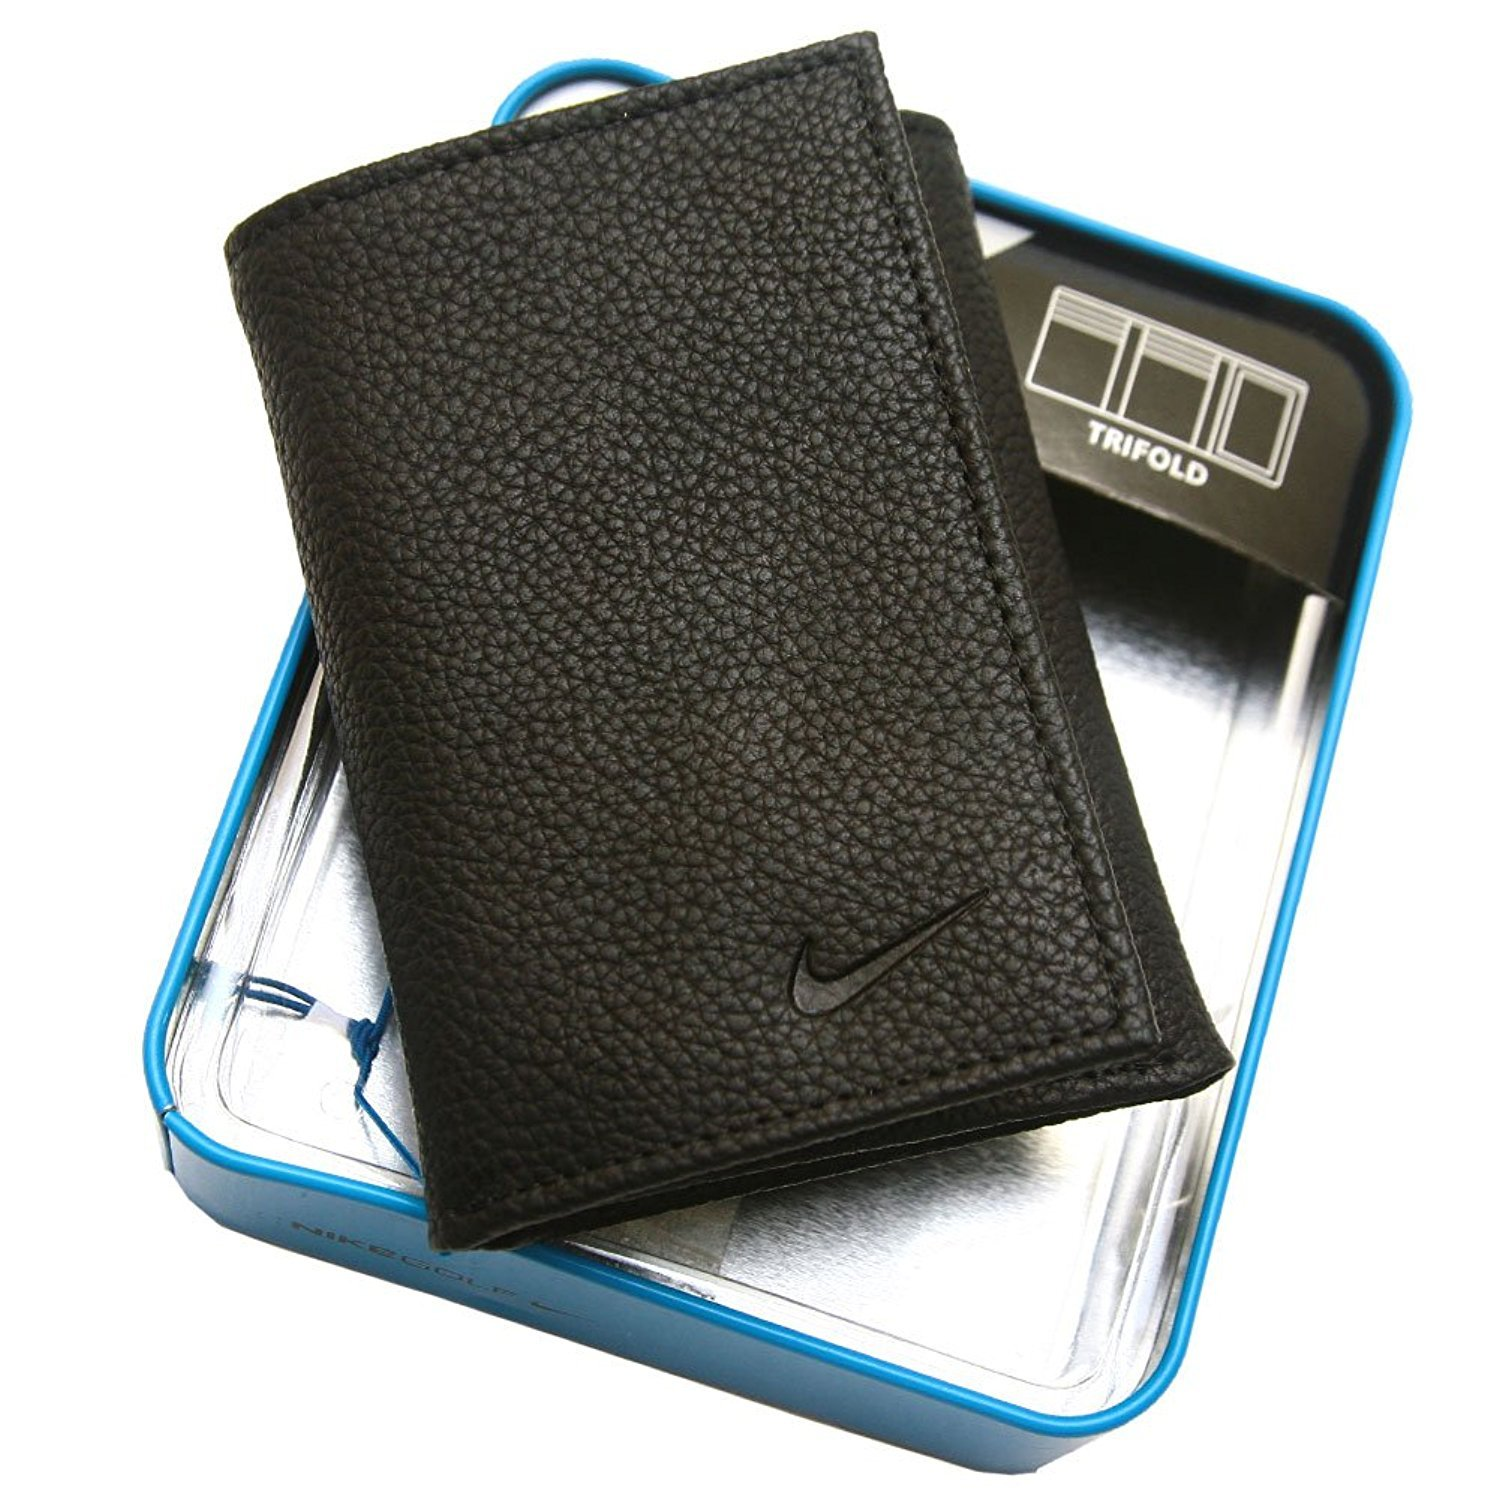 25b2d80de7 Amazon.com: Nike Golf Men's Genuine Leather Pebble Trifold Wallet, Black:  Sports & Outdoors